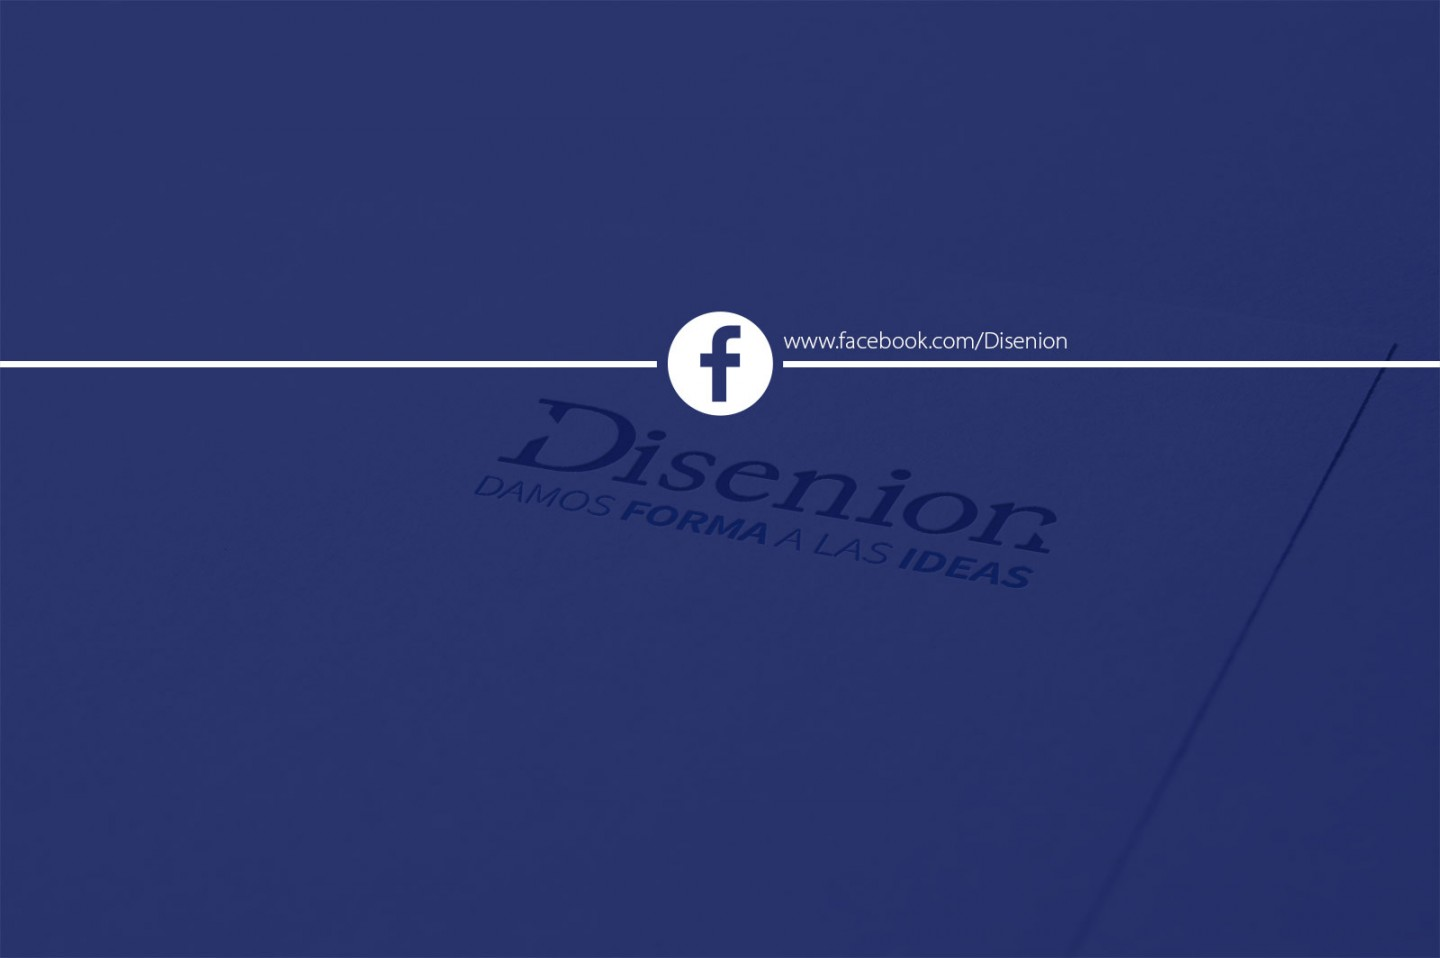 Logo-Disenion-Facebook